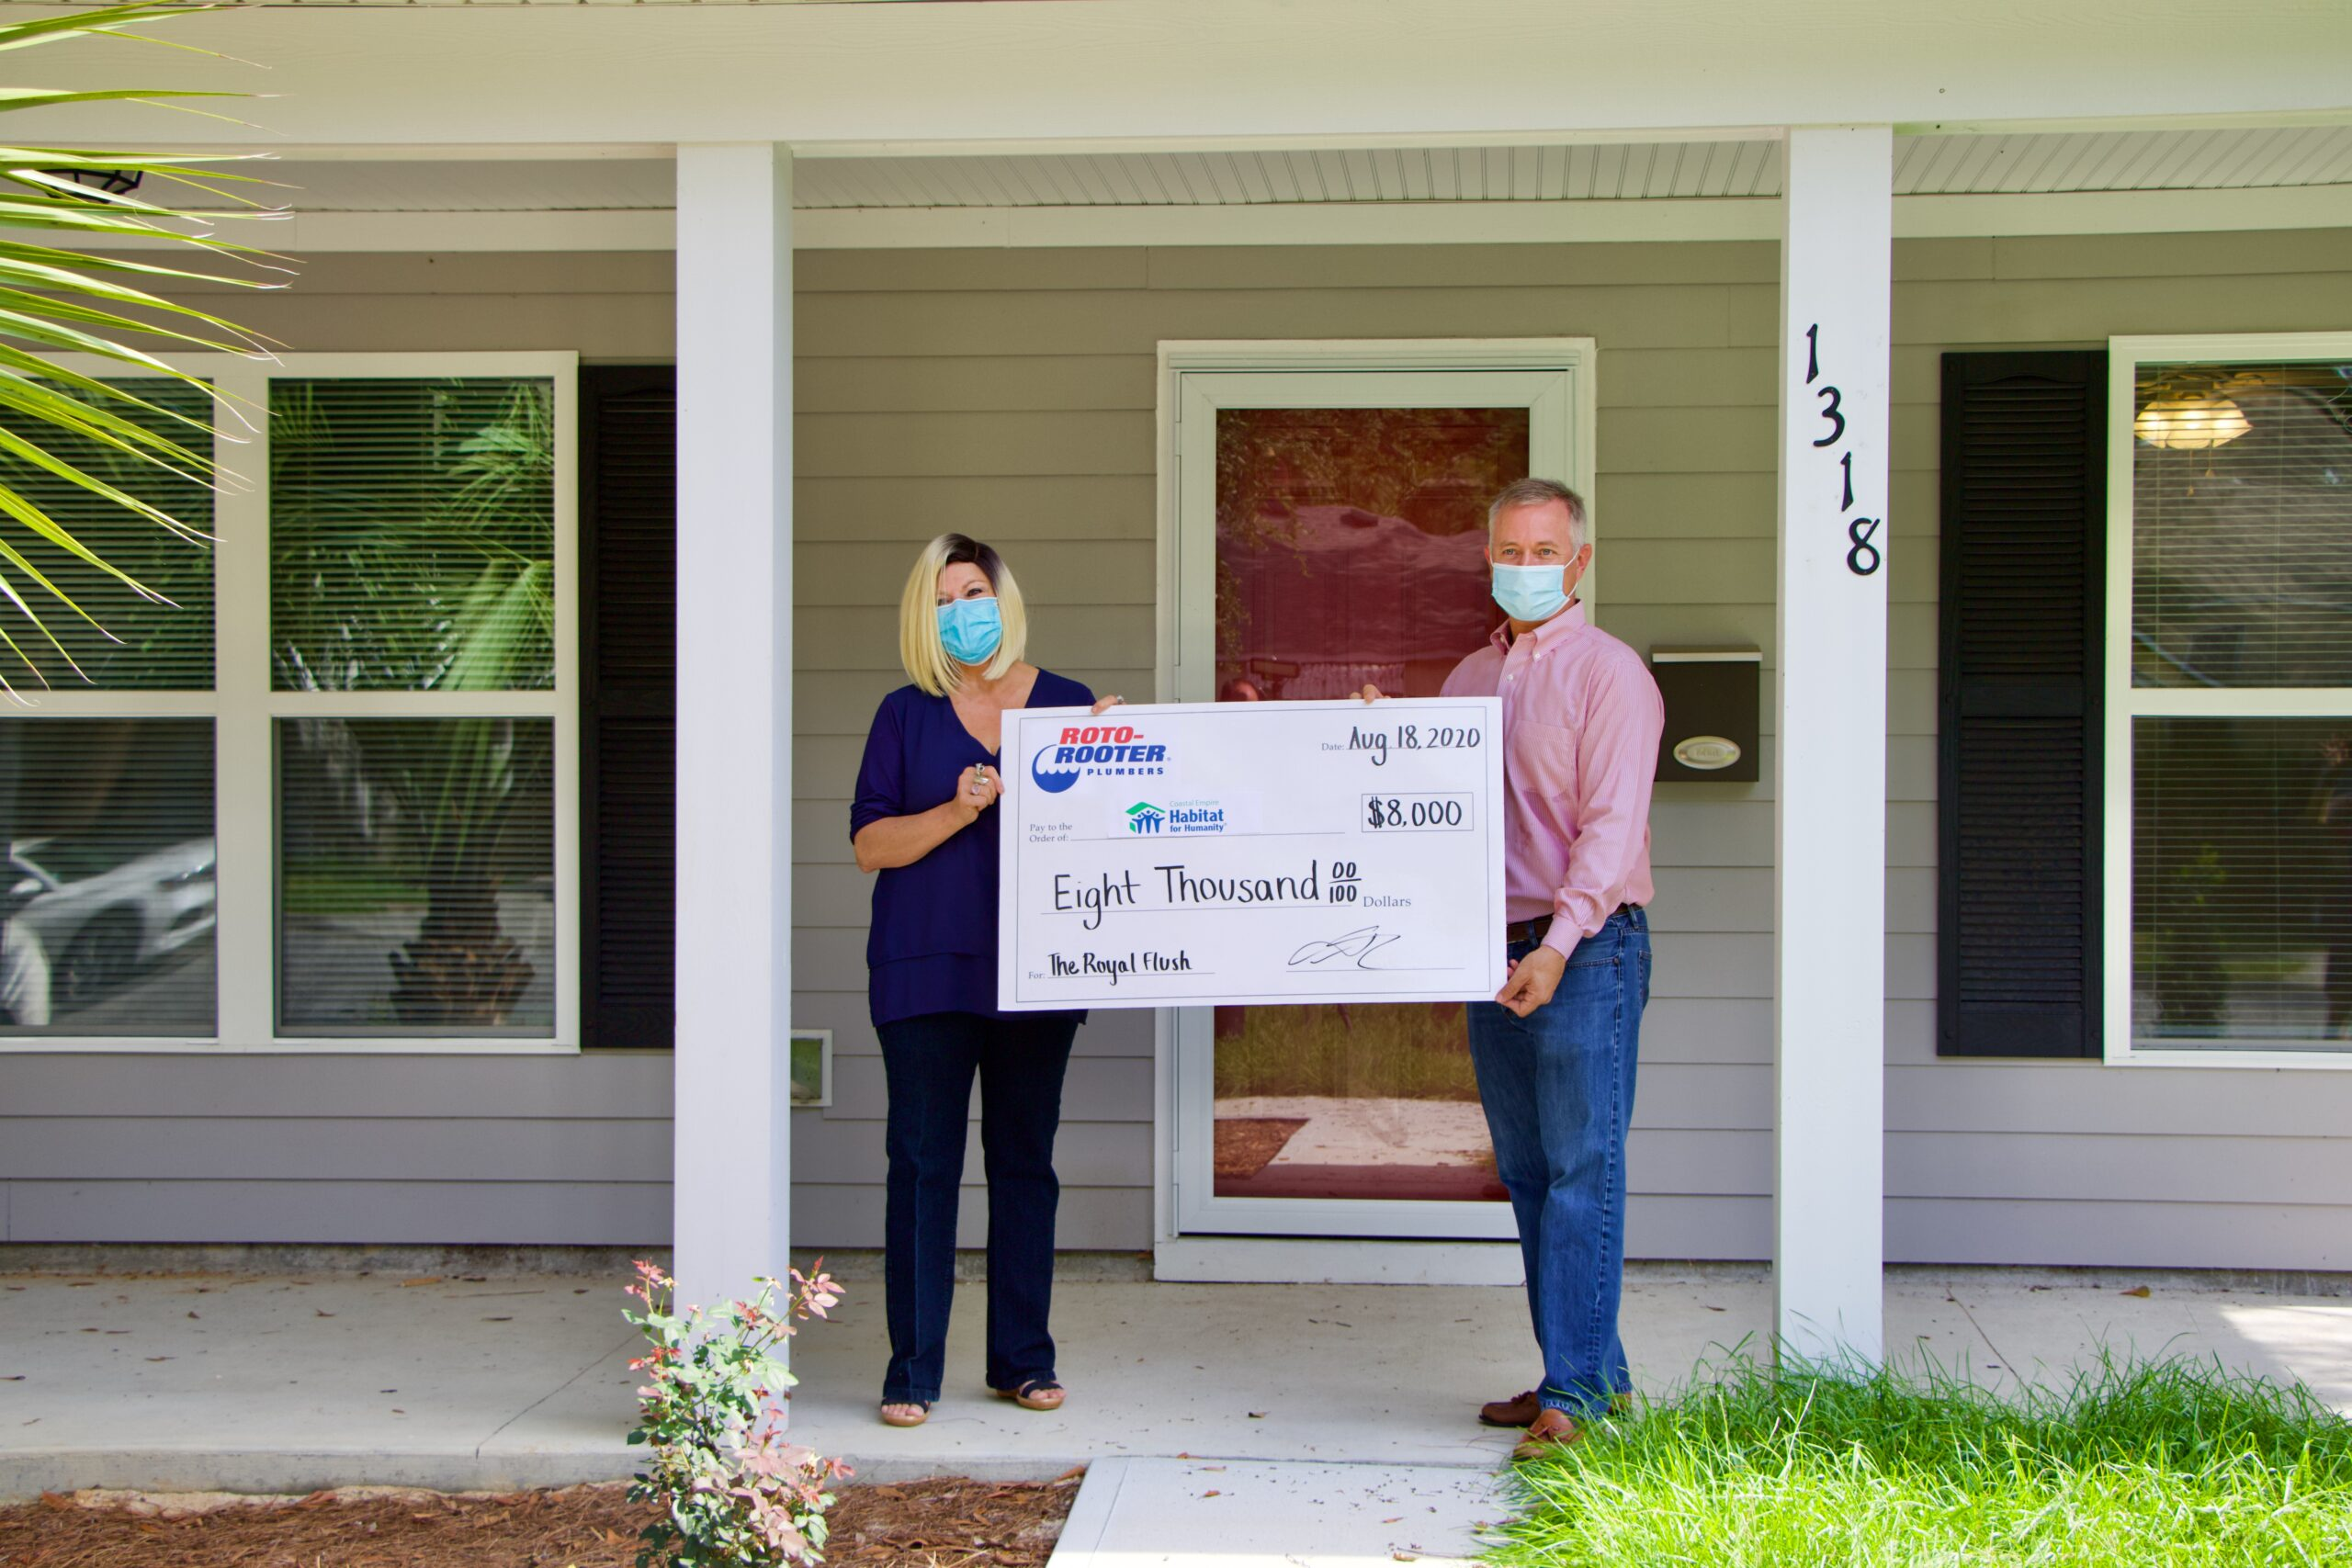 Roto-Rooter Plumbers of Savannah Presents 8,000 dollars to Habitat for Humanity